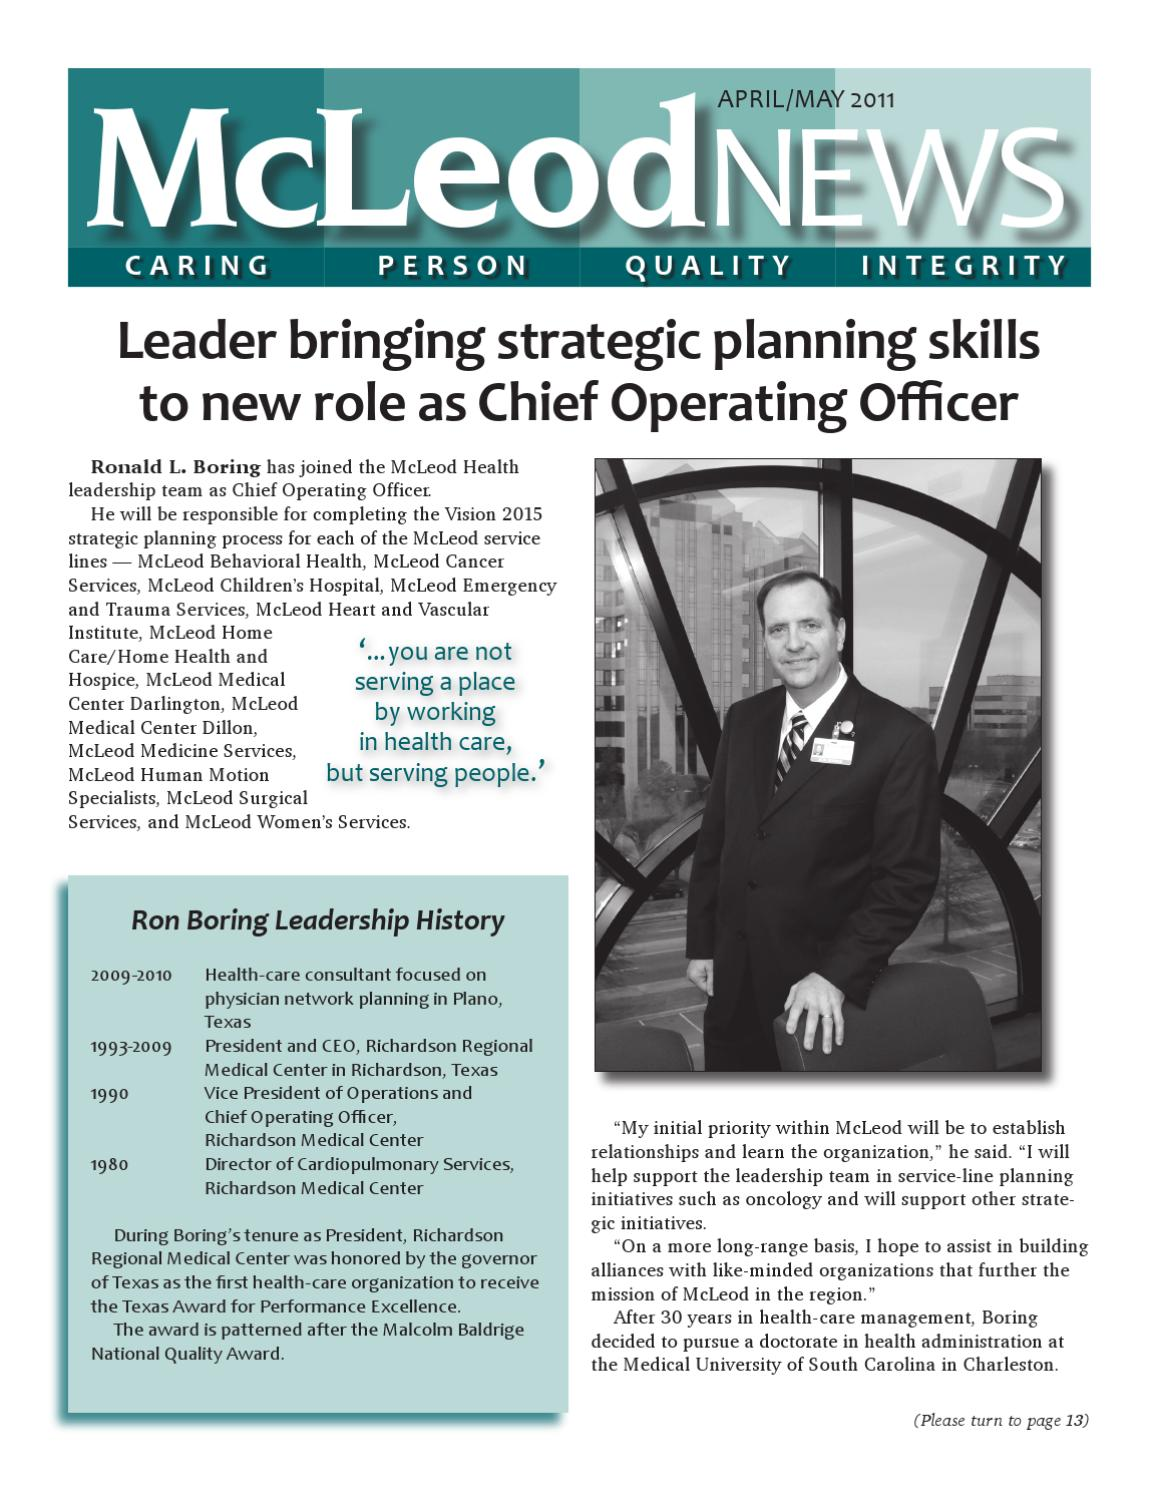 McLeod News -- April-May 2011 by McLeod Health - issuu